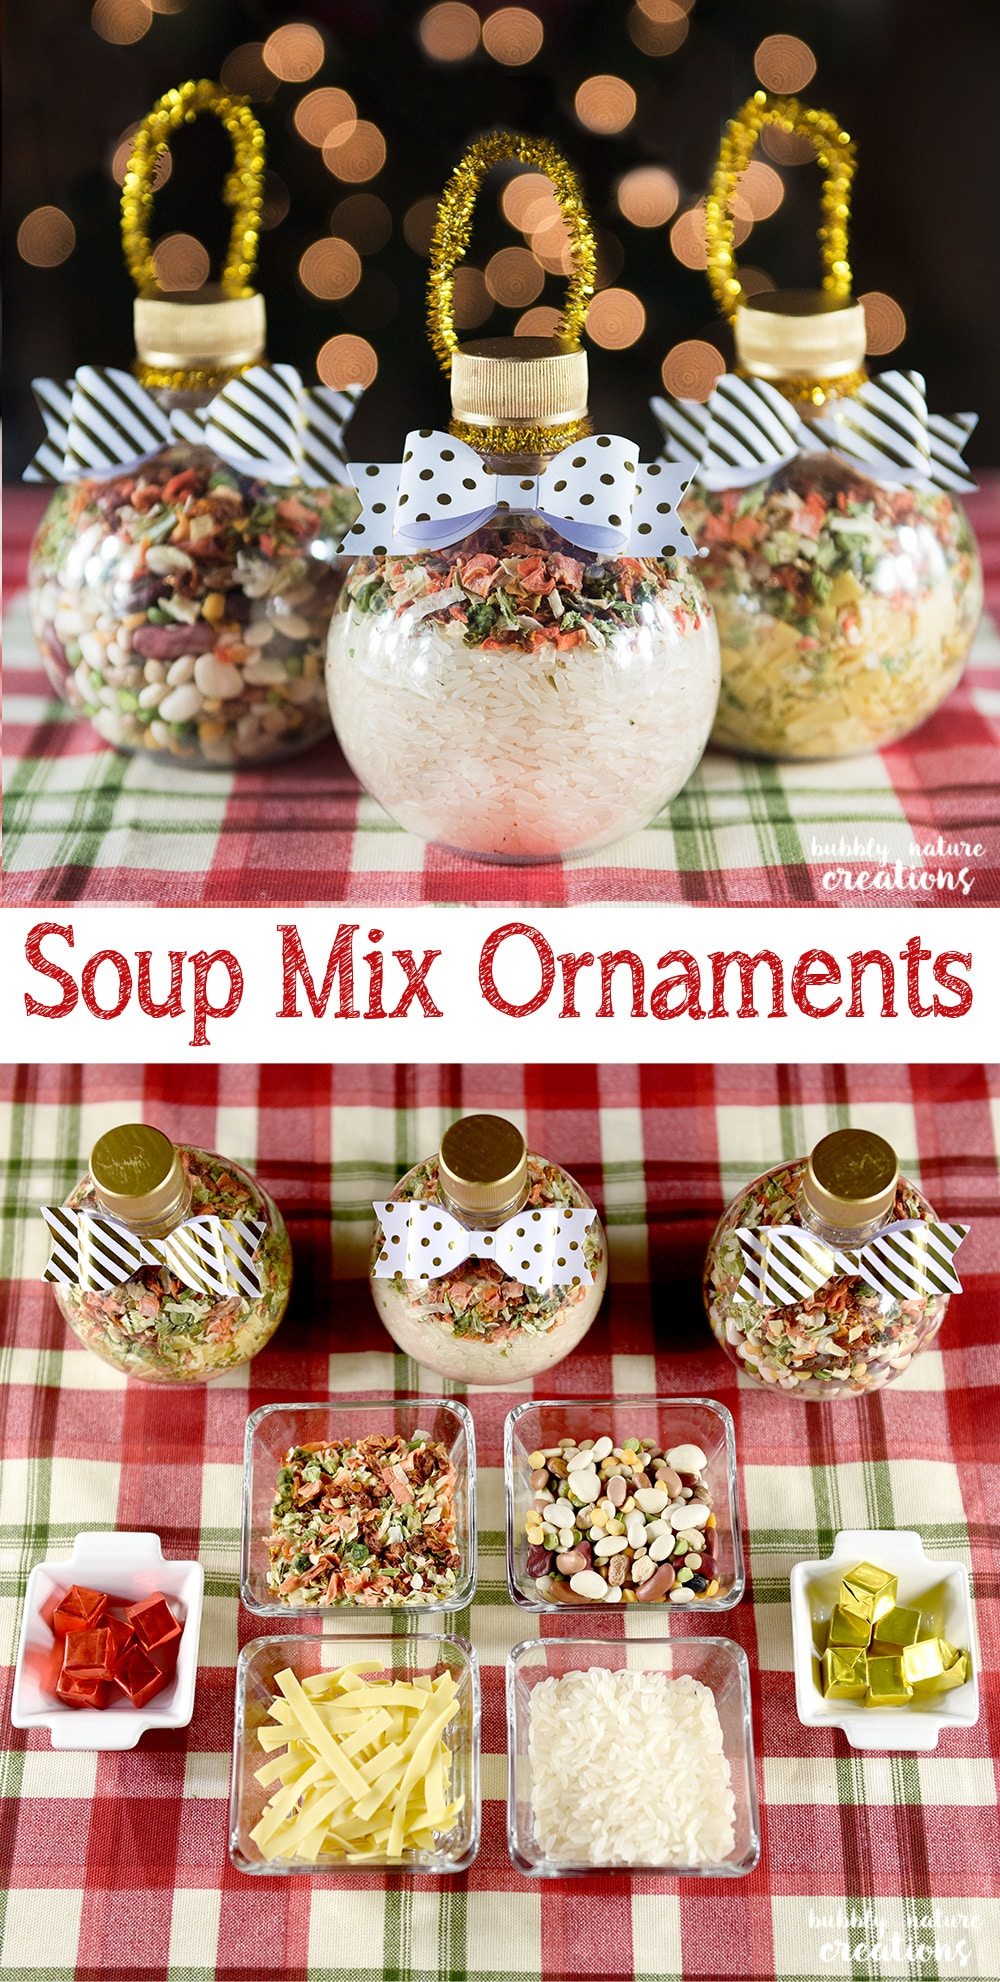 Soup Mix Ornaments - Sprinkle Some Fun